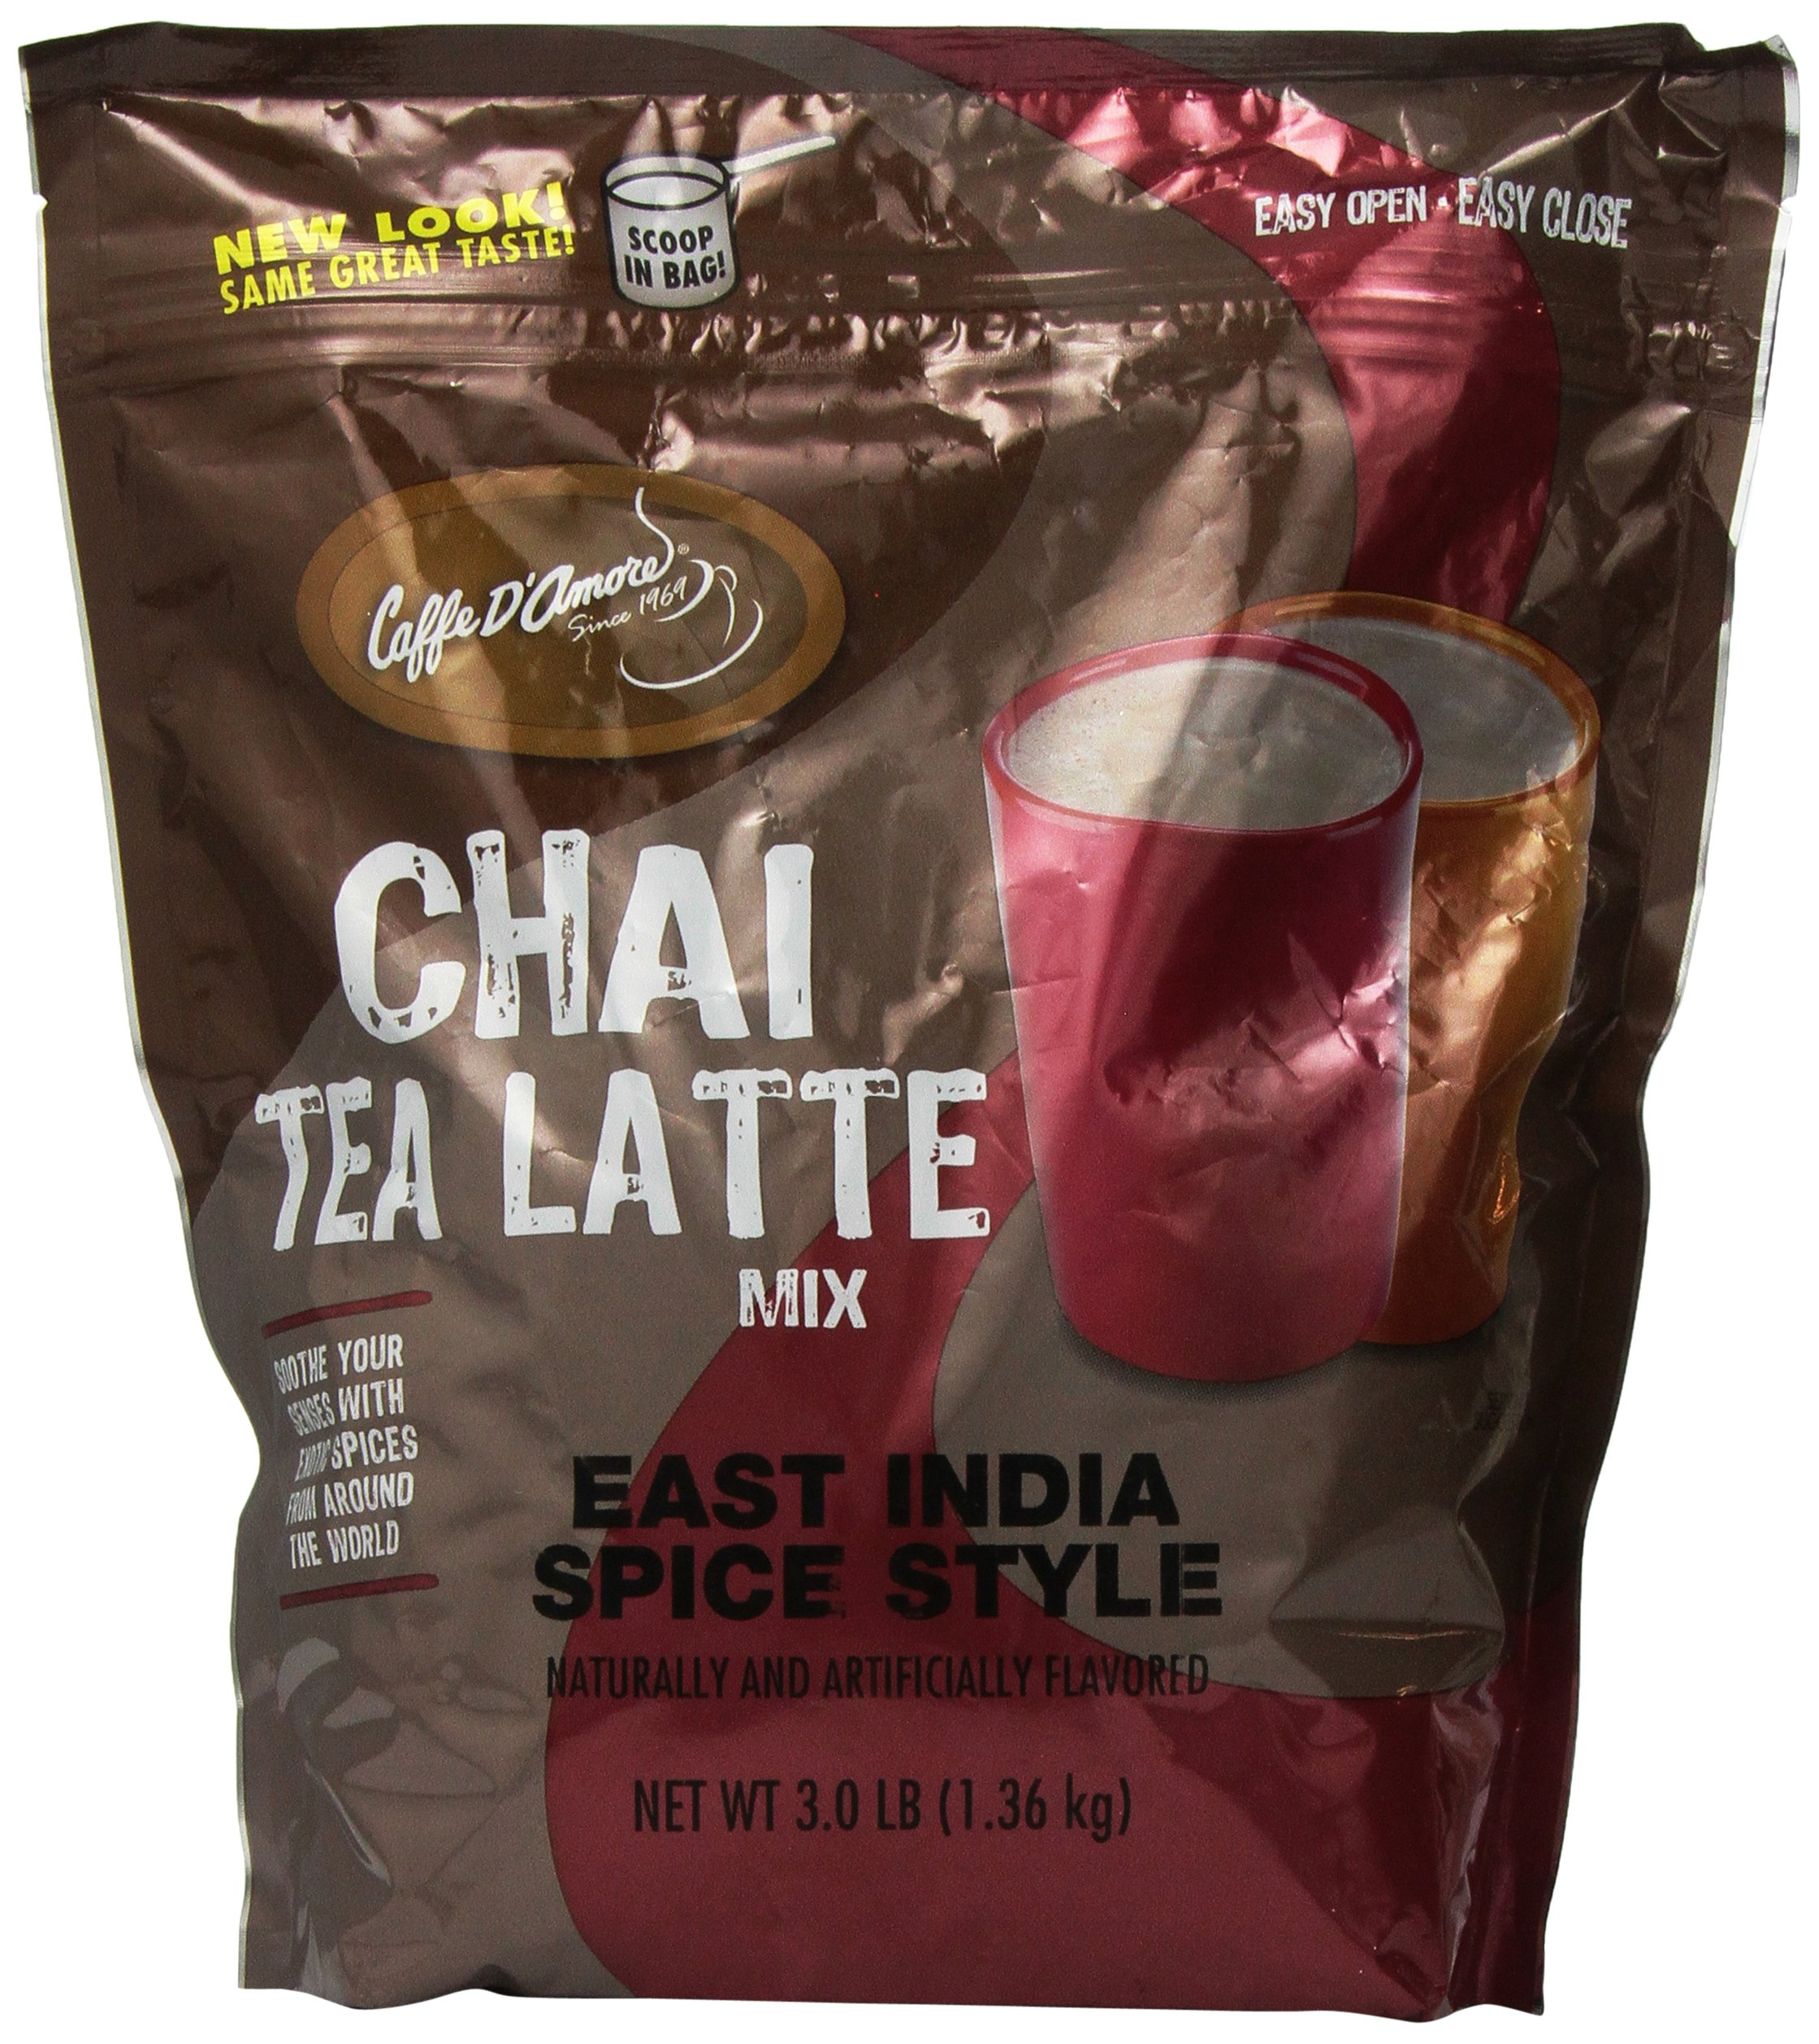 Chai Amore East India Spice Tea Latte Blended Drink Mix, 3 Pounds